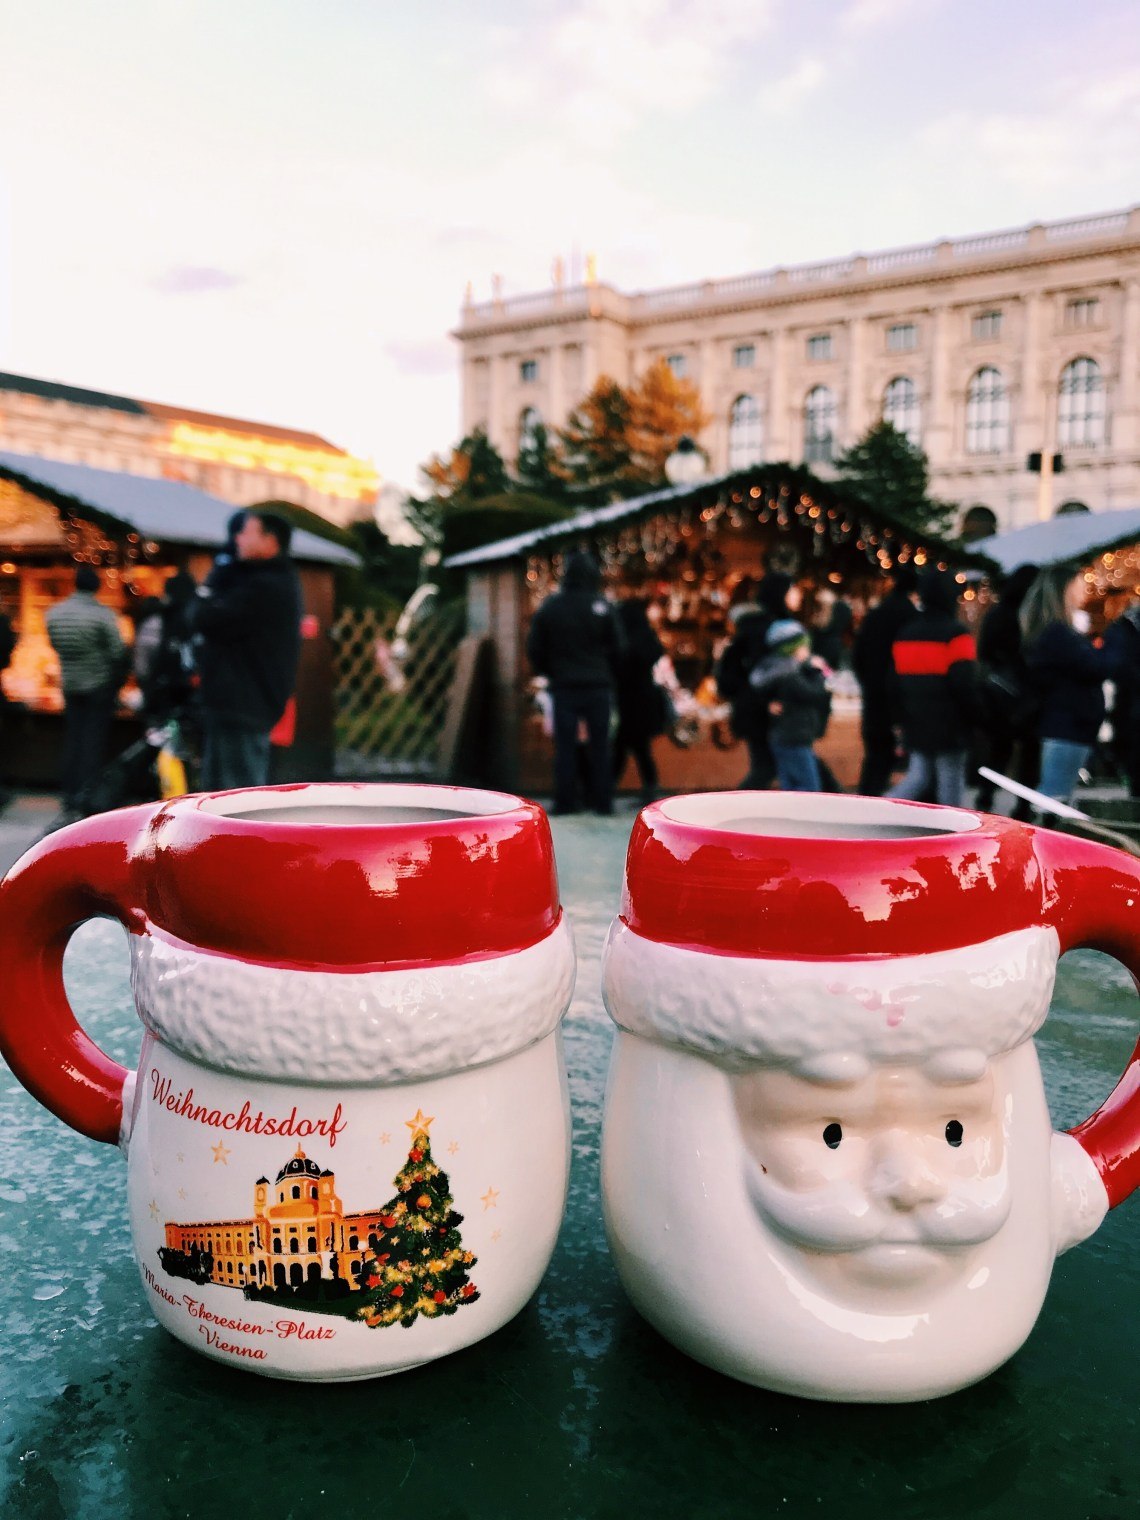 Christmas markets in Vienna Austria